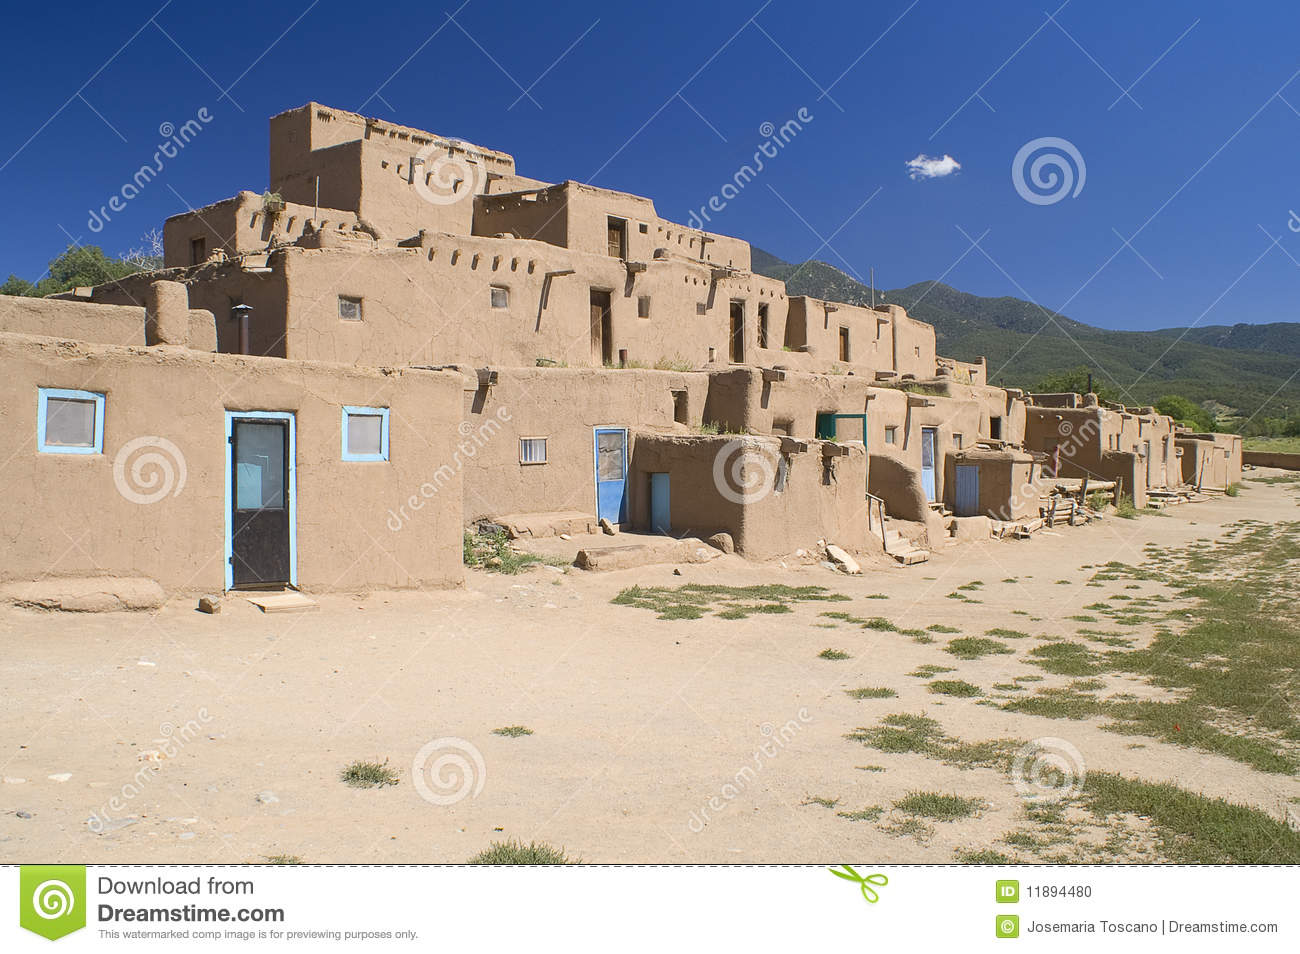 Adobe houses in the pueblo of taos stock photo image 11894480 - Pueblo adobe houses property ...